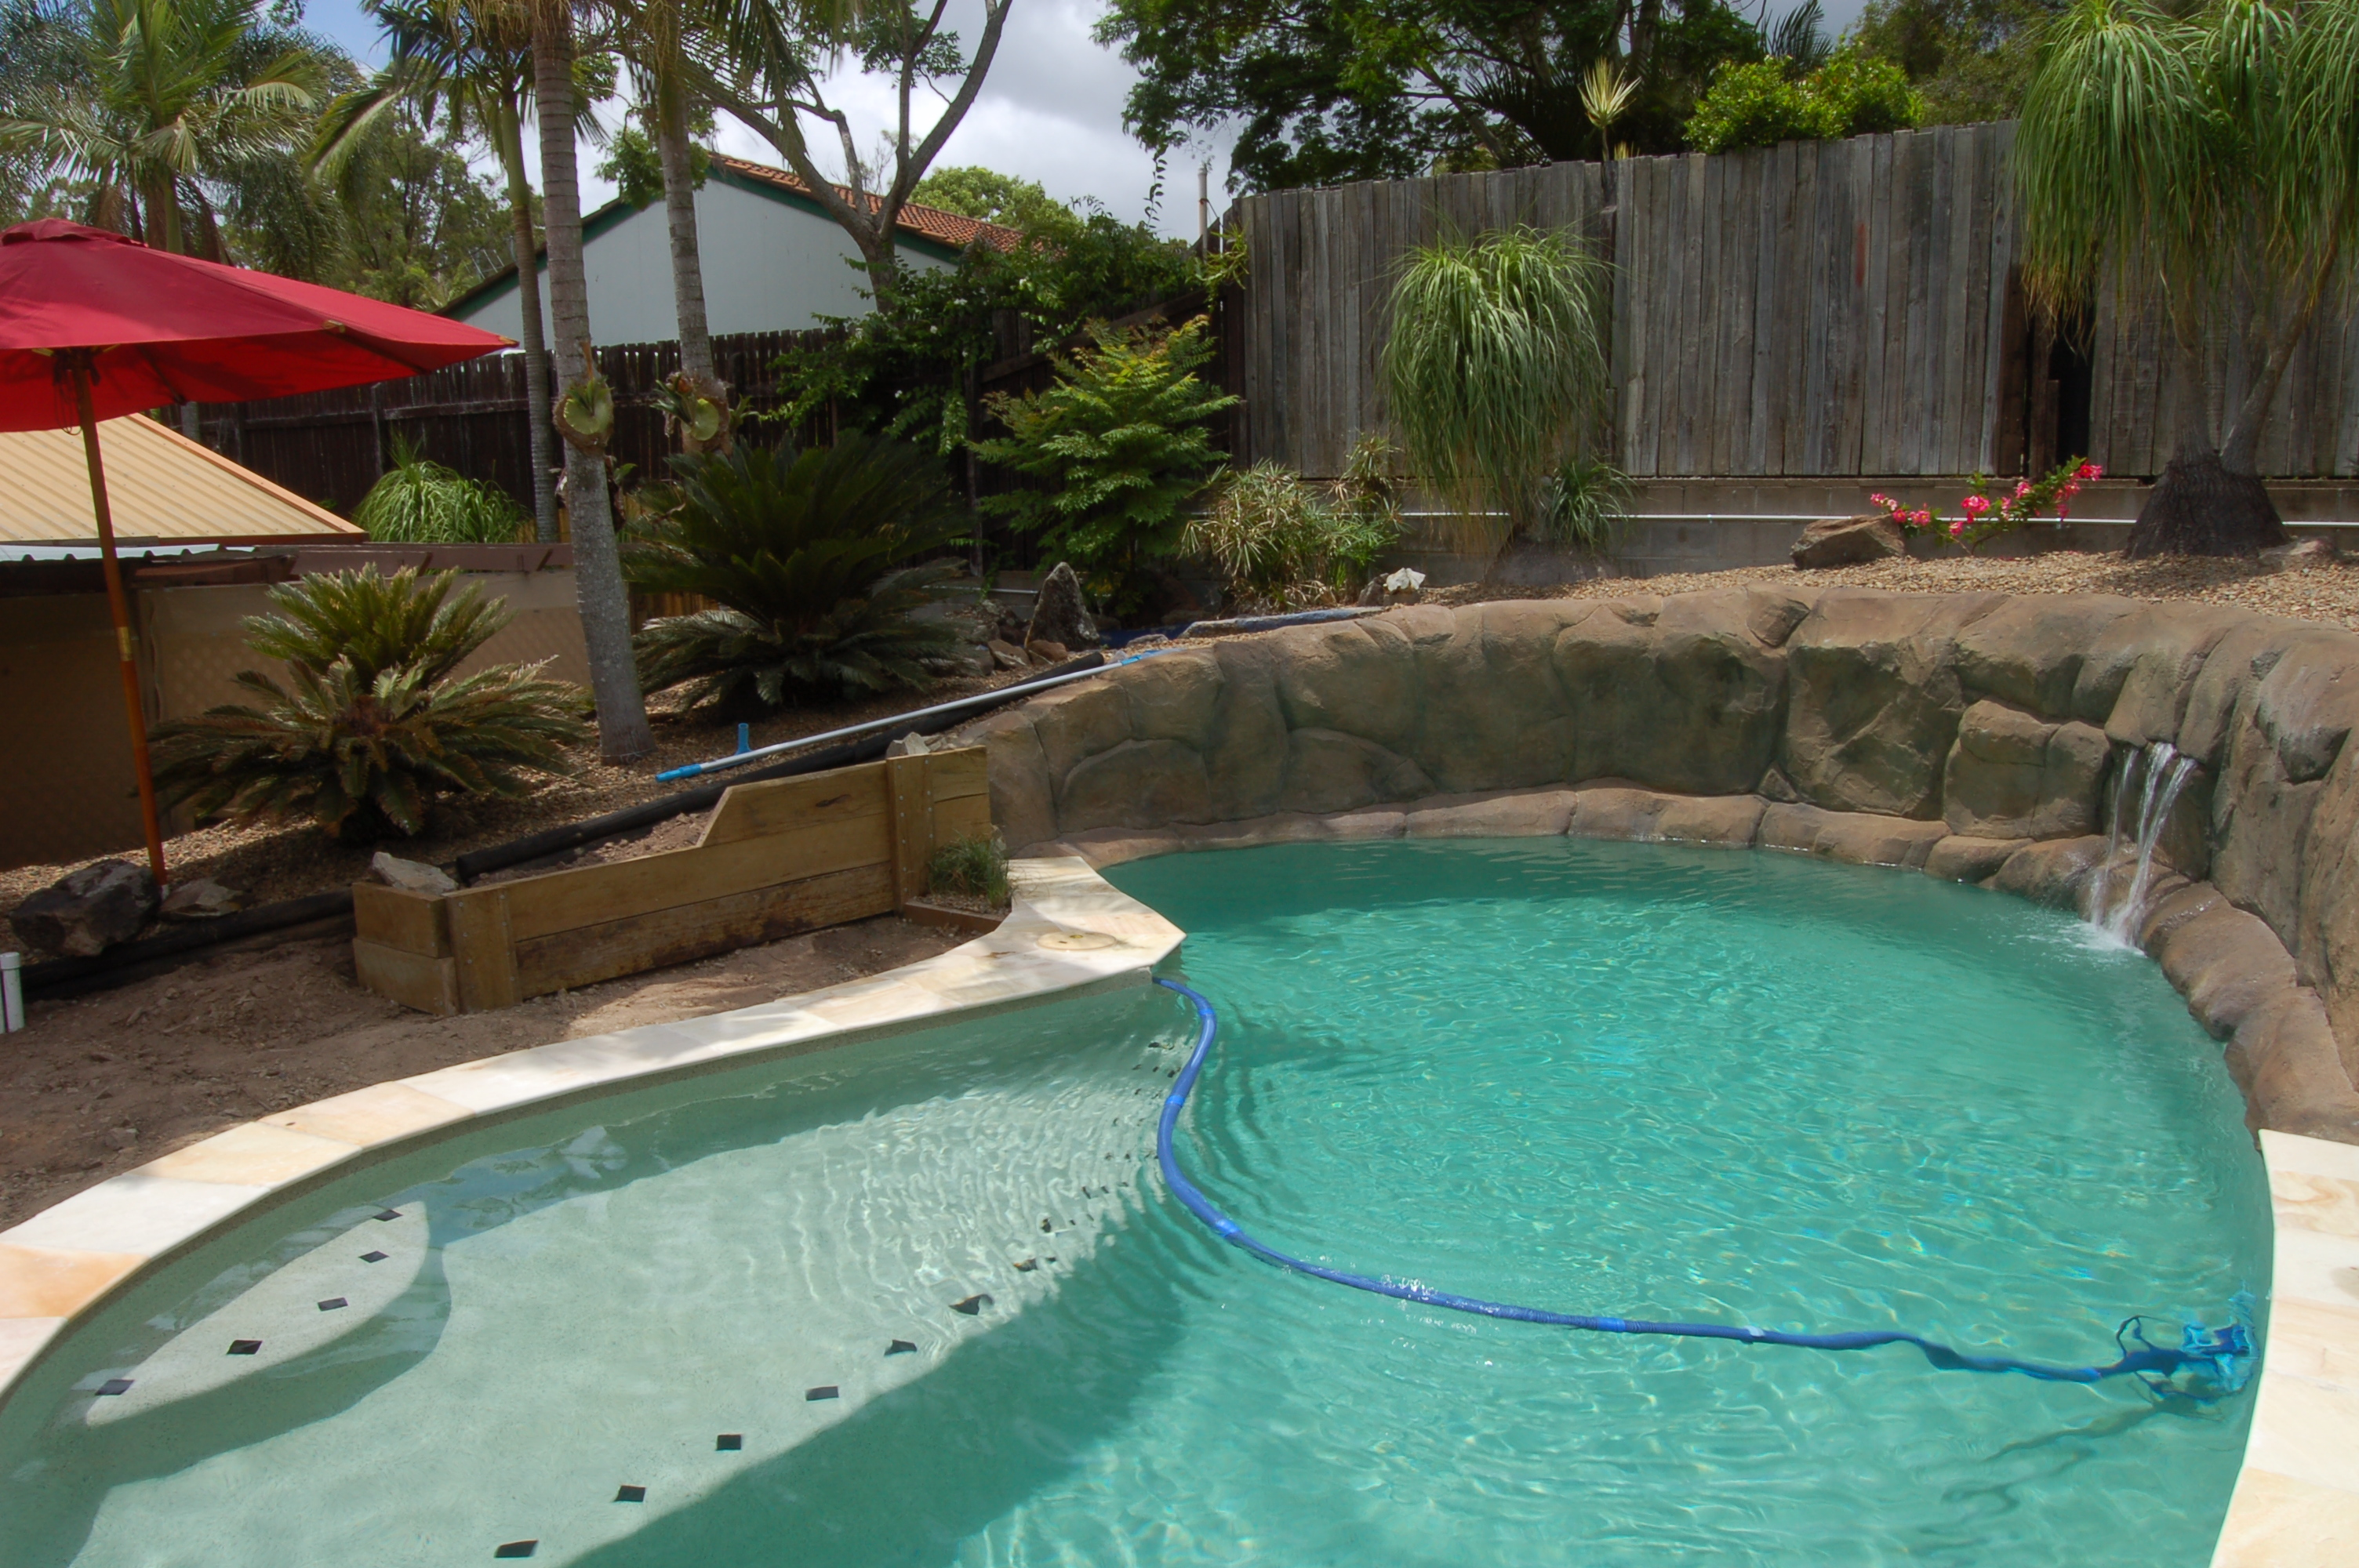 27 Swimming Pool Building Regulations Brisbane Decor23